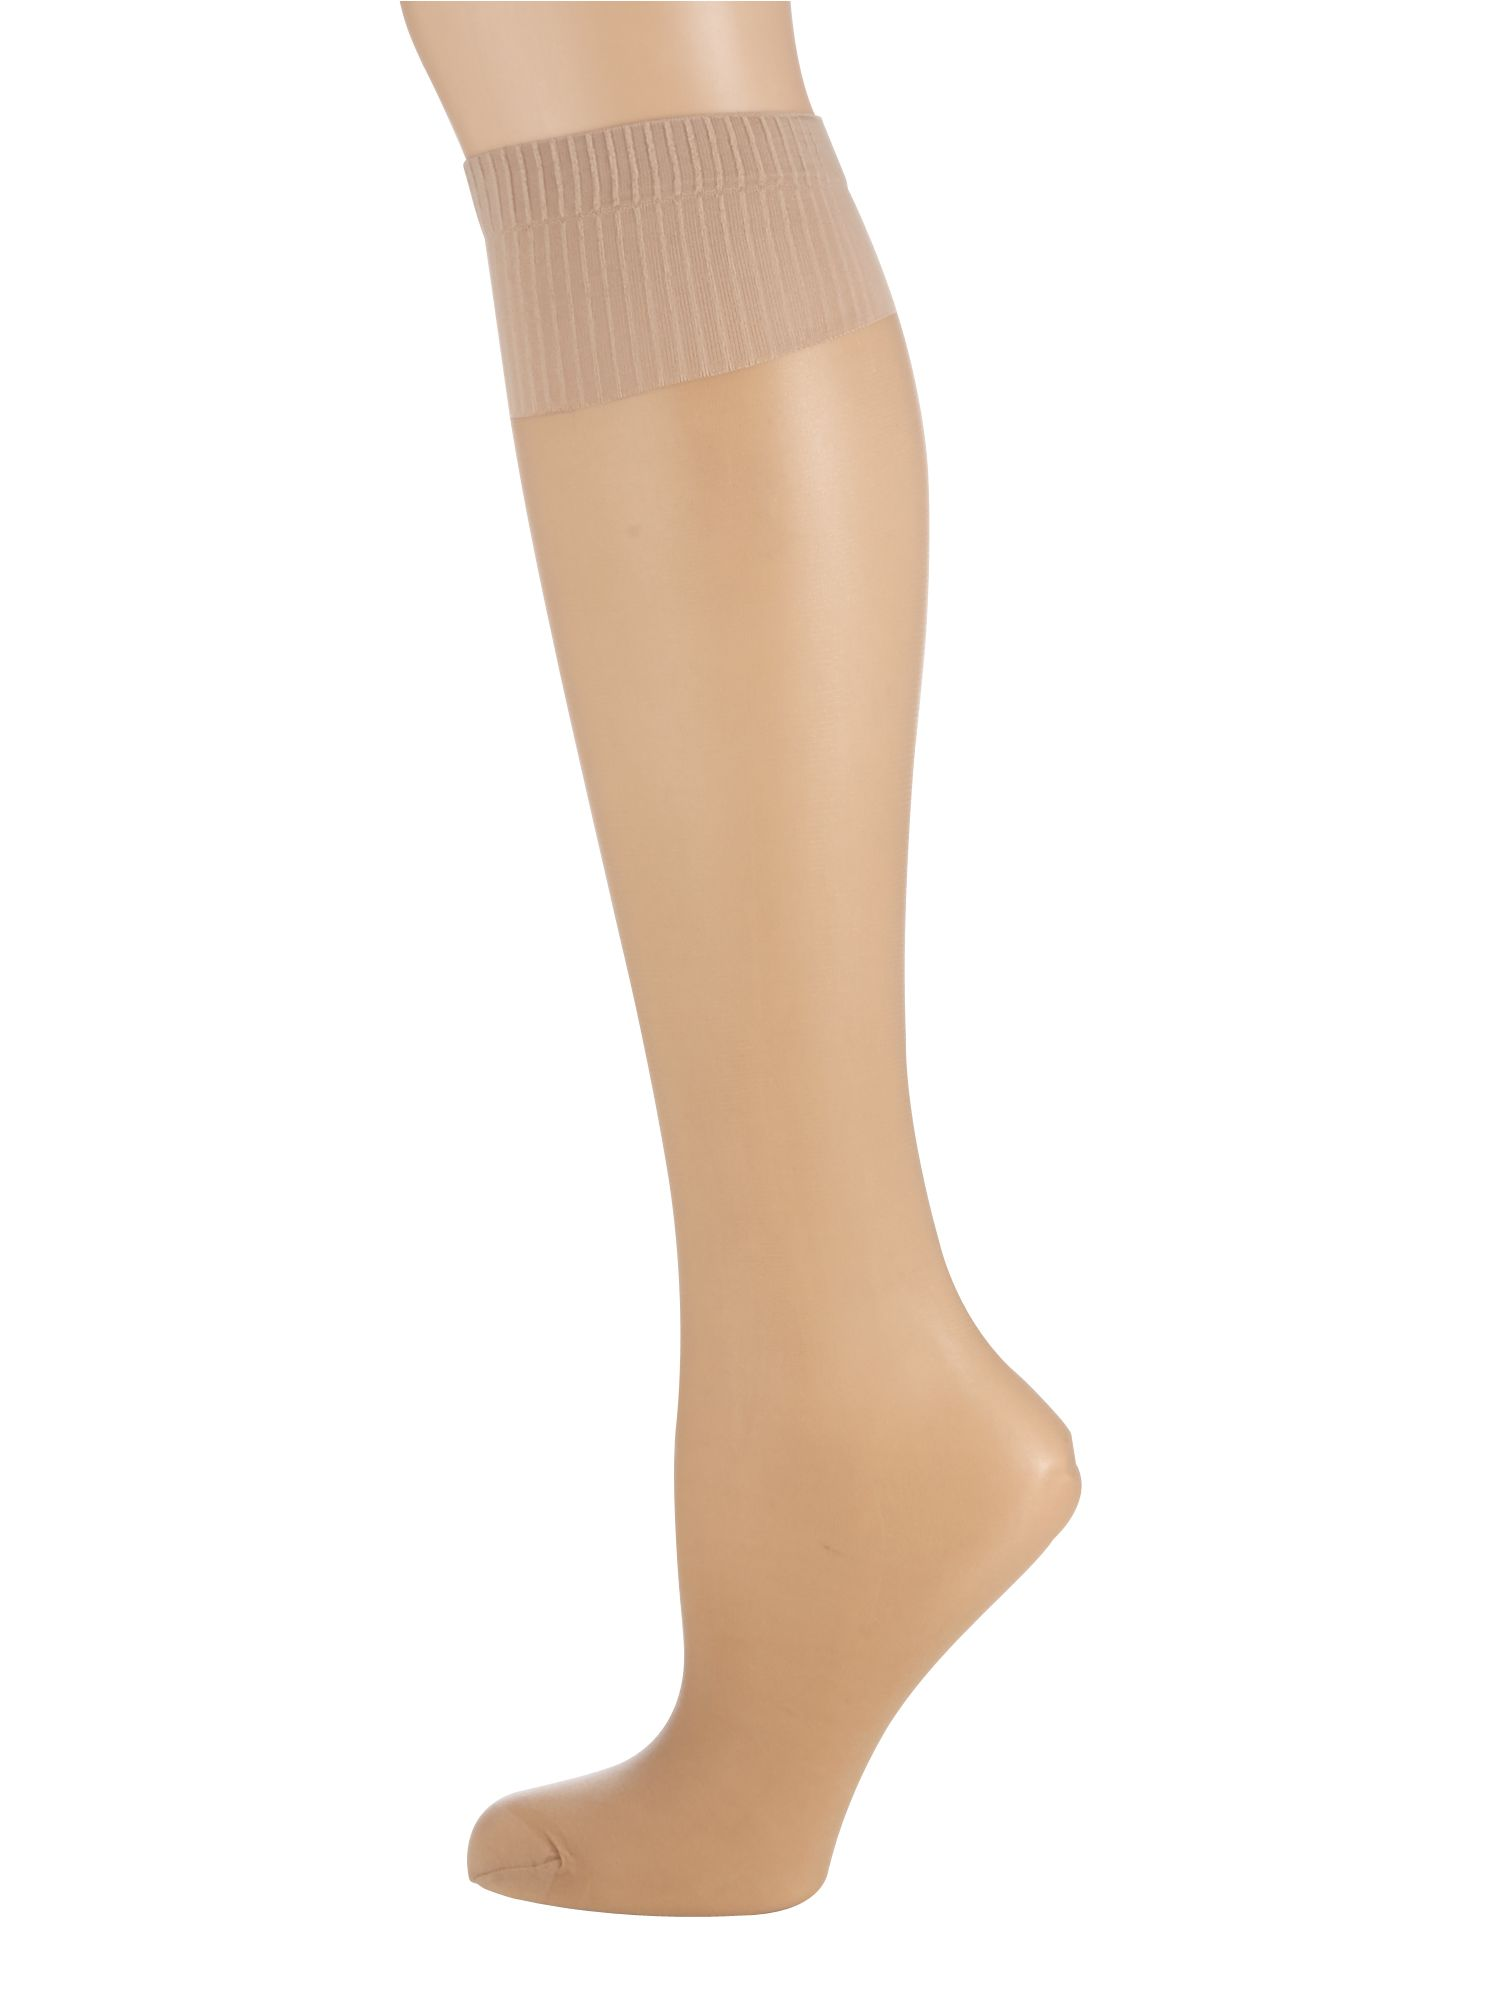 Aristoc Aristoc 2 pair pack 15 denier support knee high socks, Nude